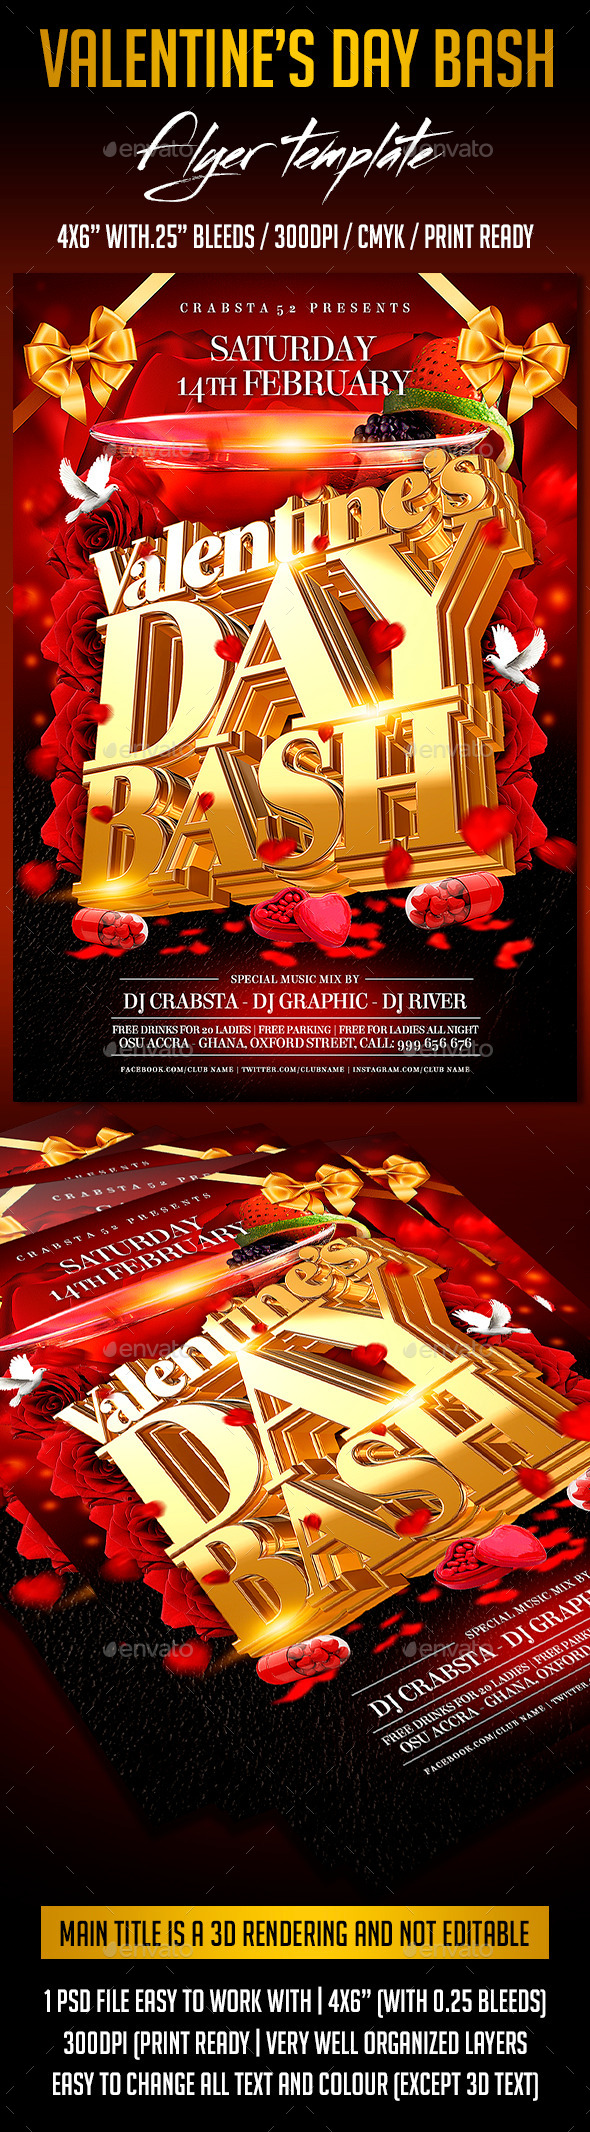 Valentine's Day Bash Flyer Template  - Flyers Print Templates